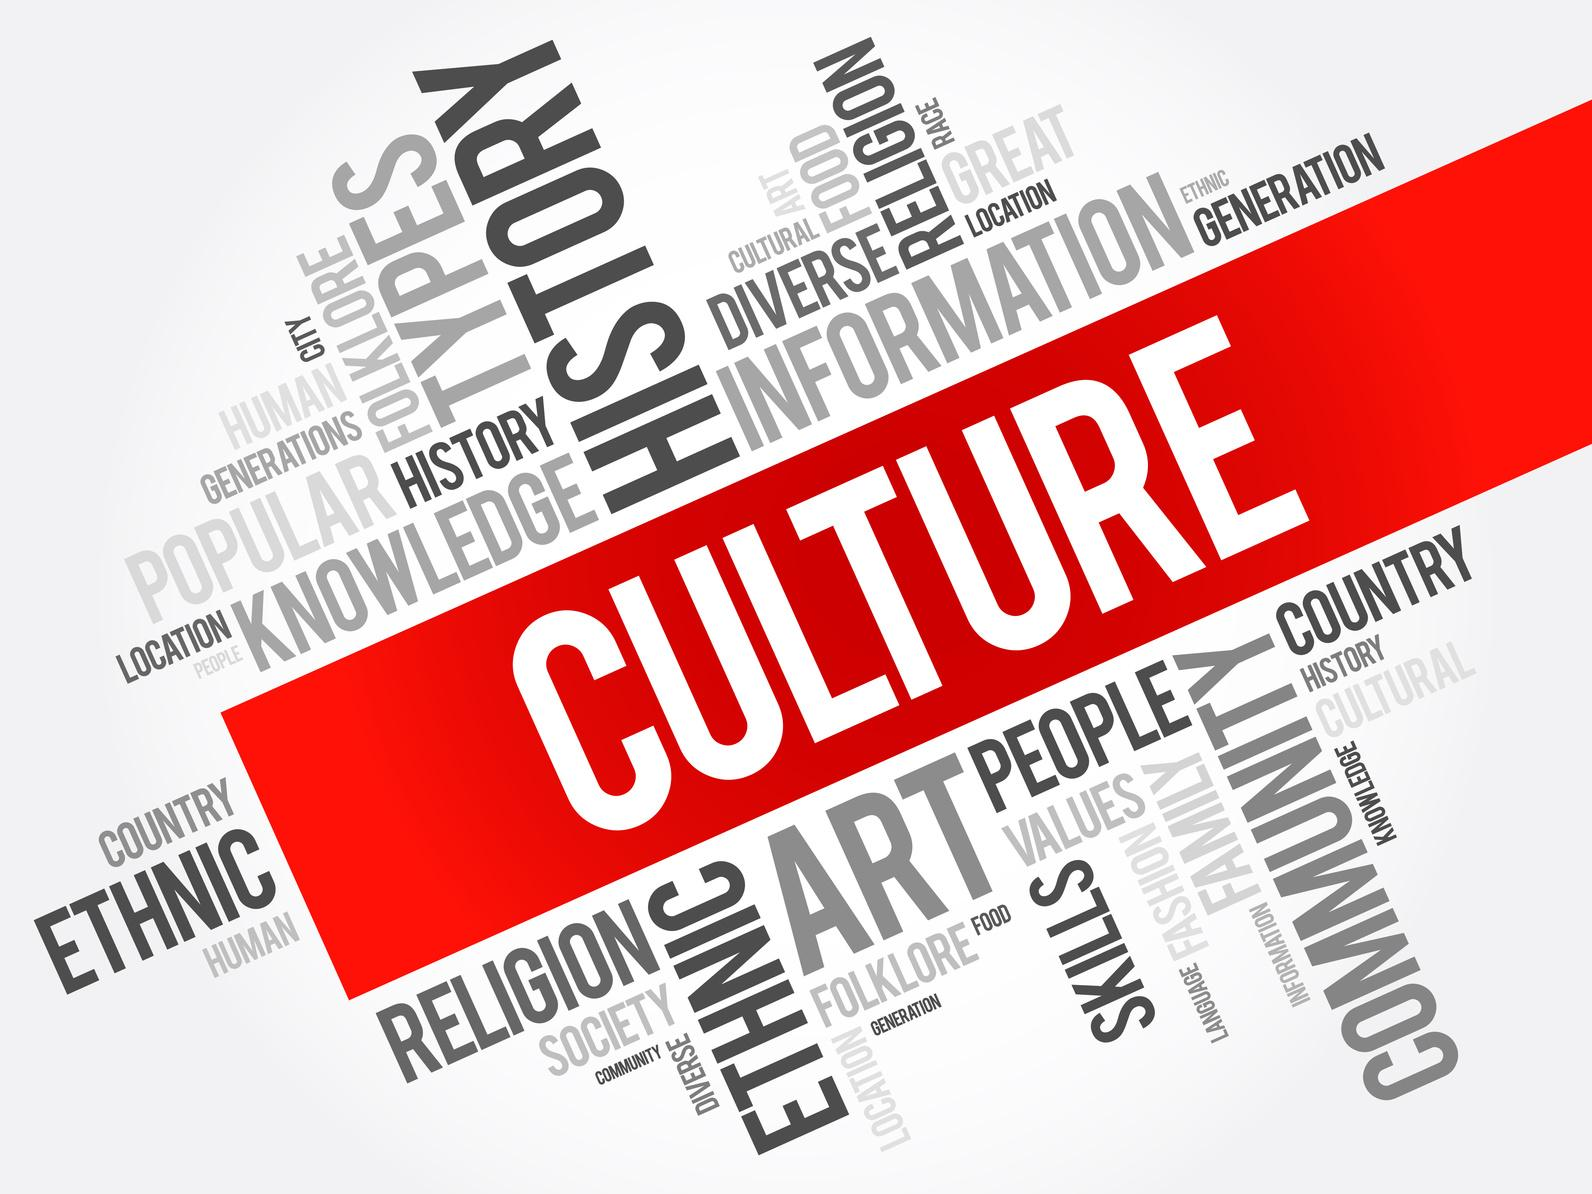 Culture and Self Assessment